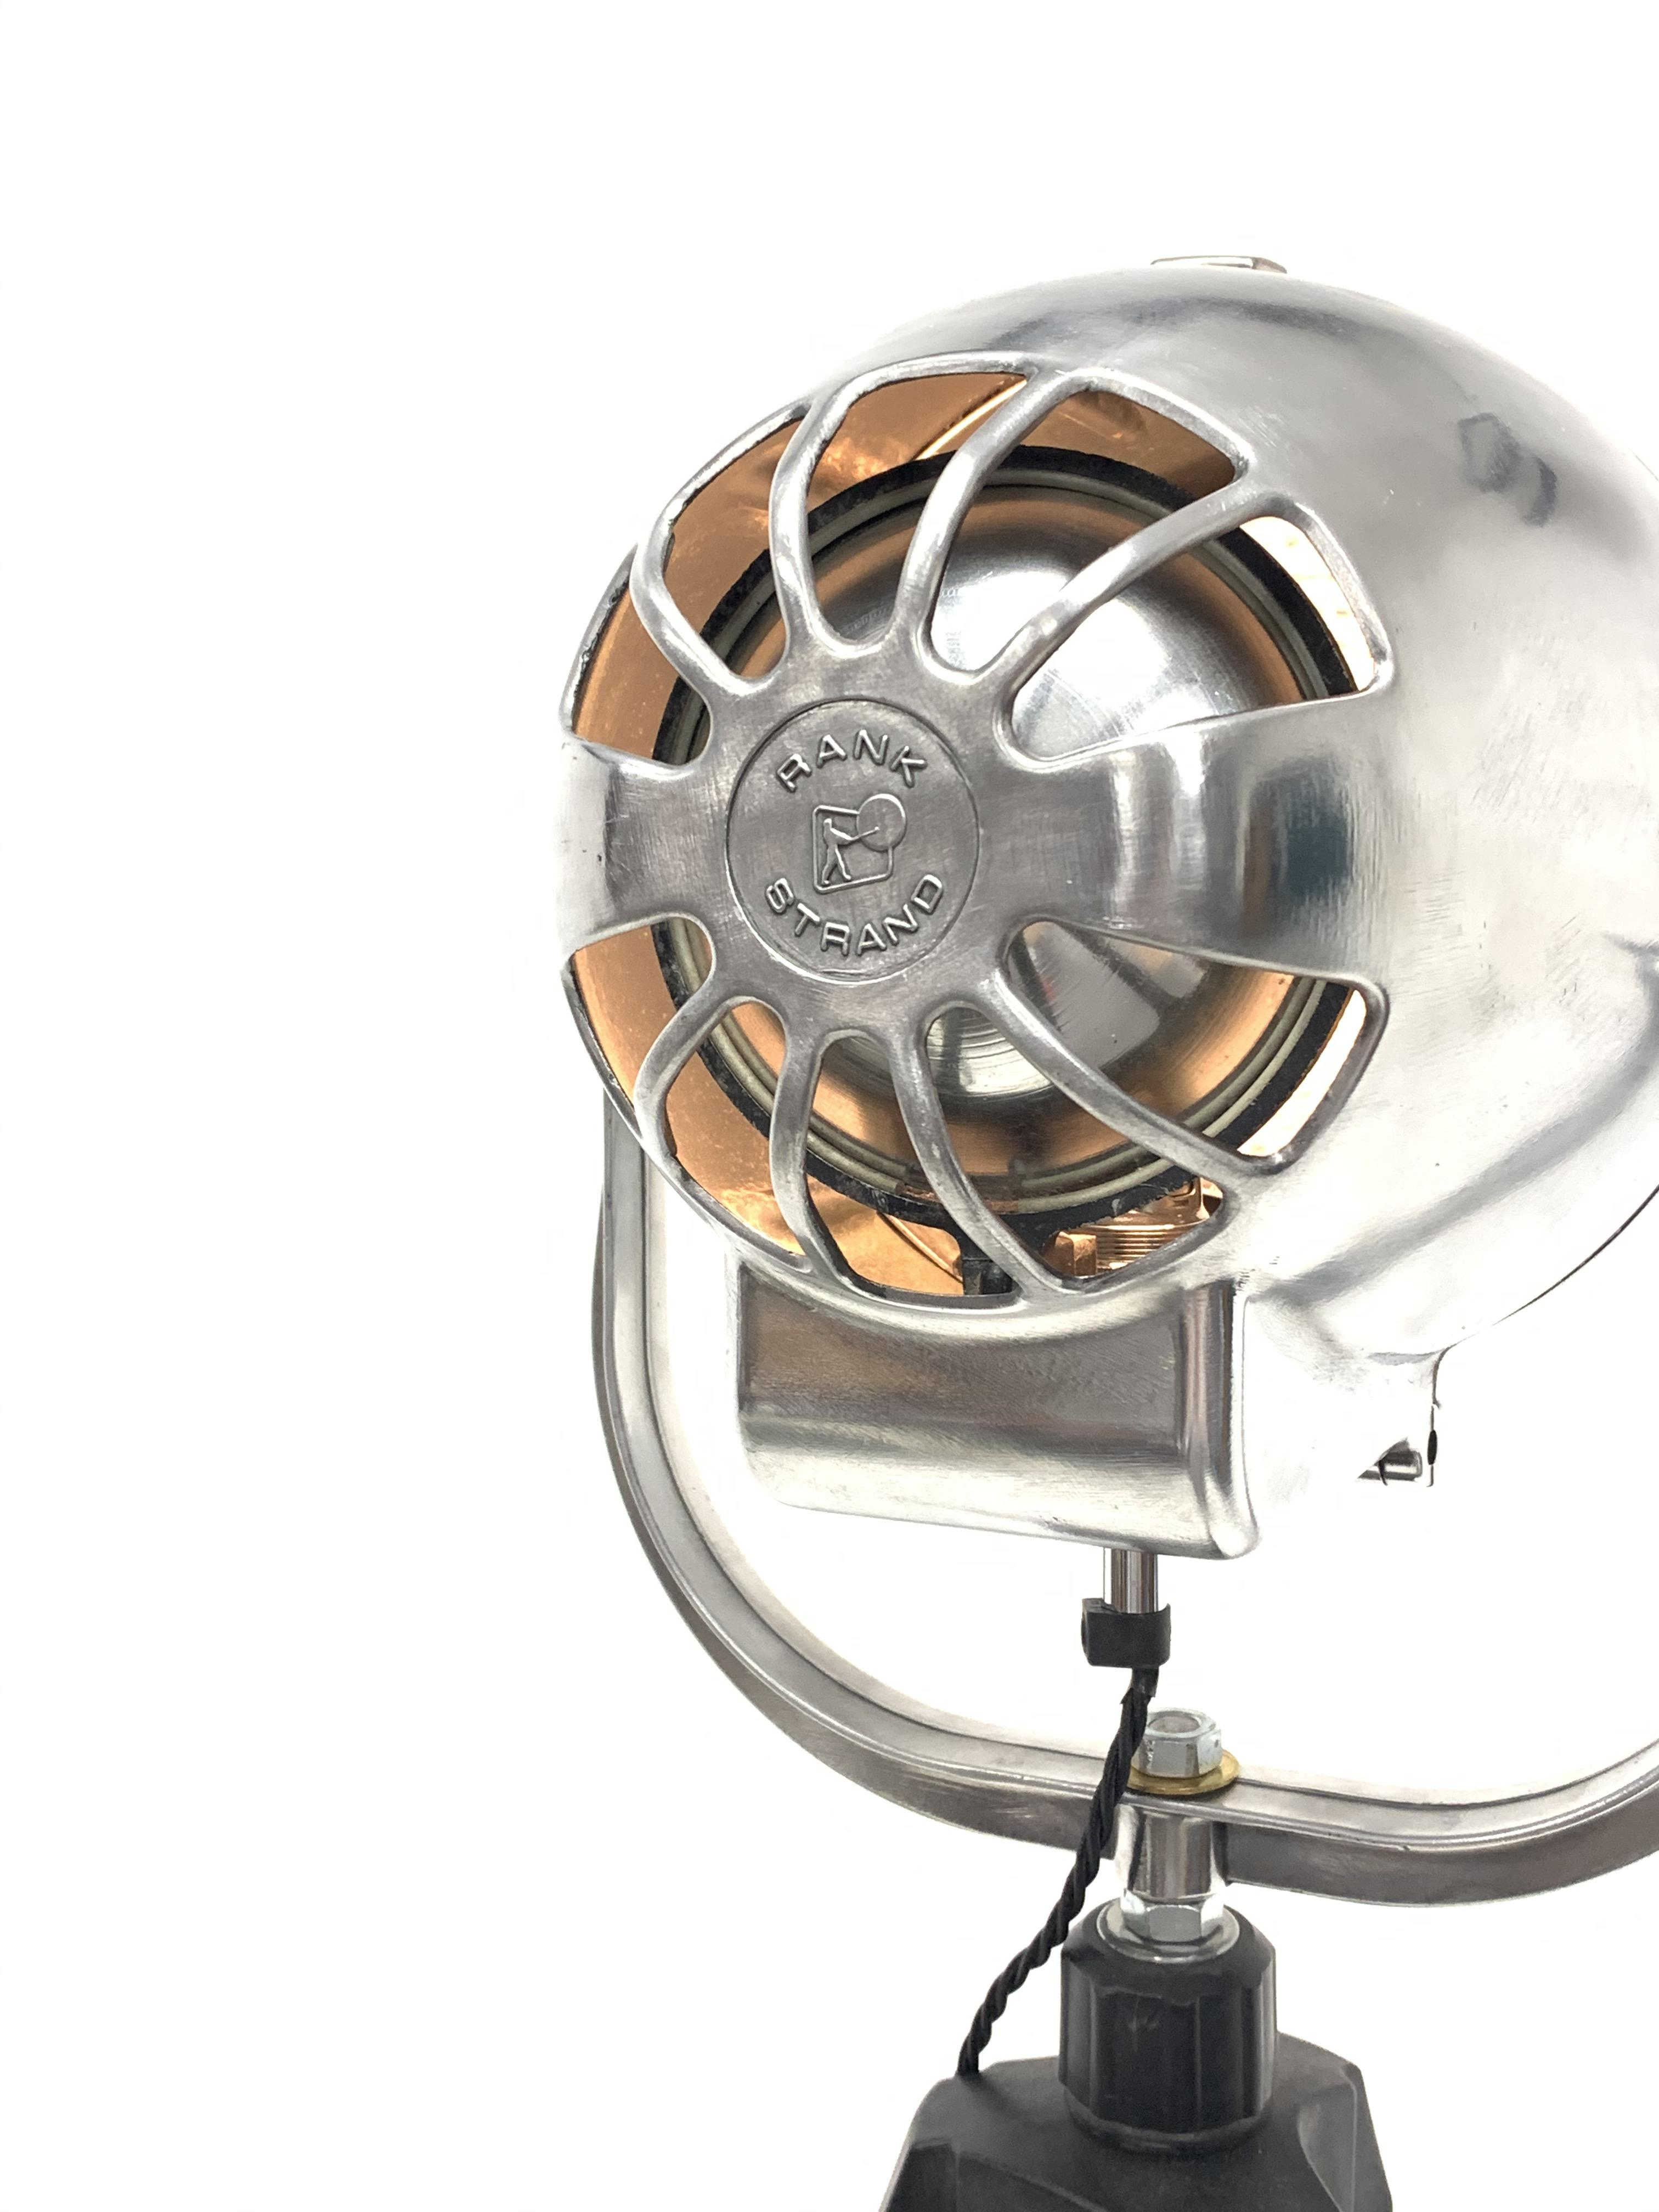 Mid 20th century 'Rank Strand' polished alloy stage light mounted on tripod base, H169cm, shipping - Image 3 of 3